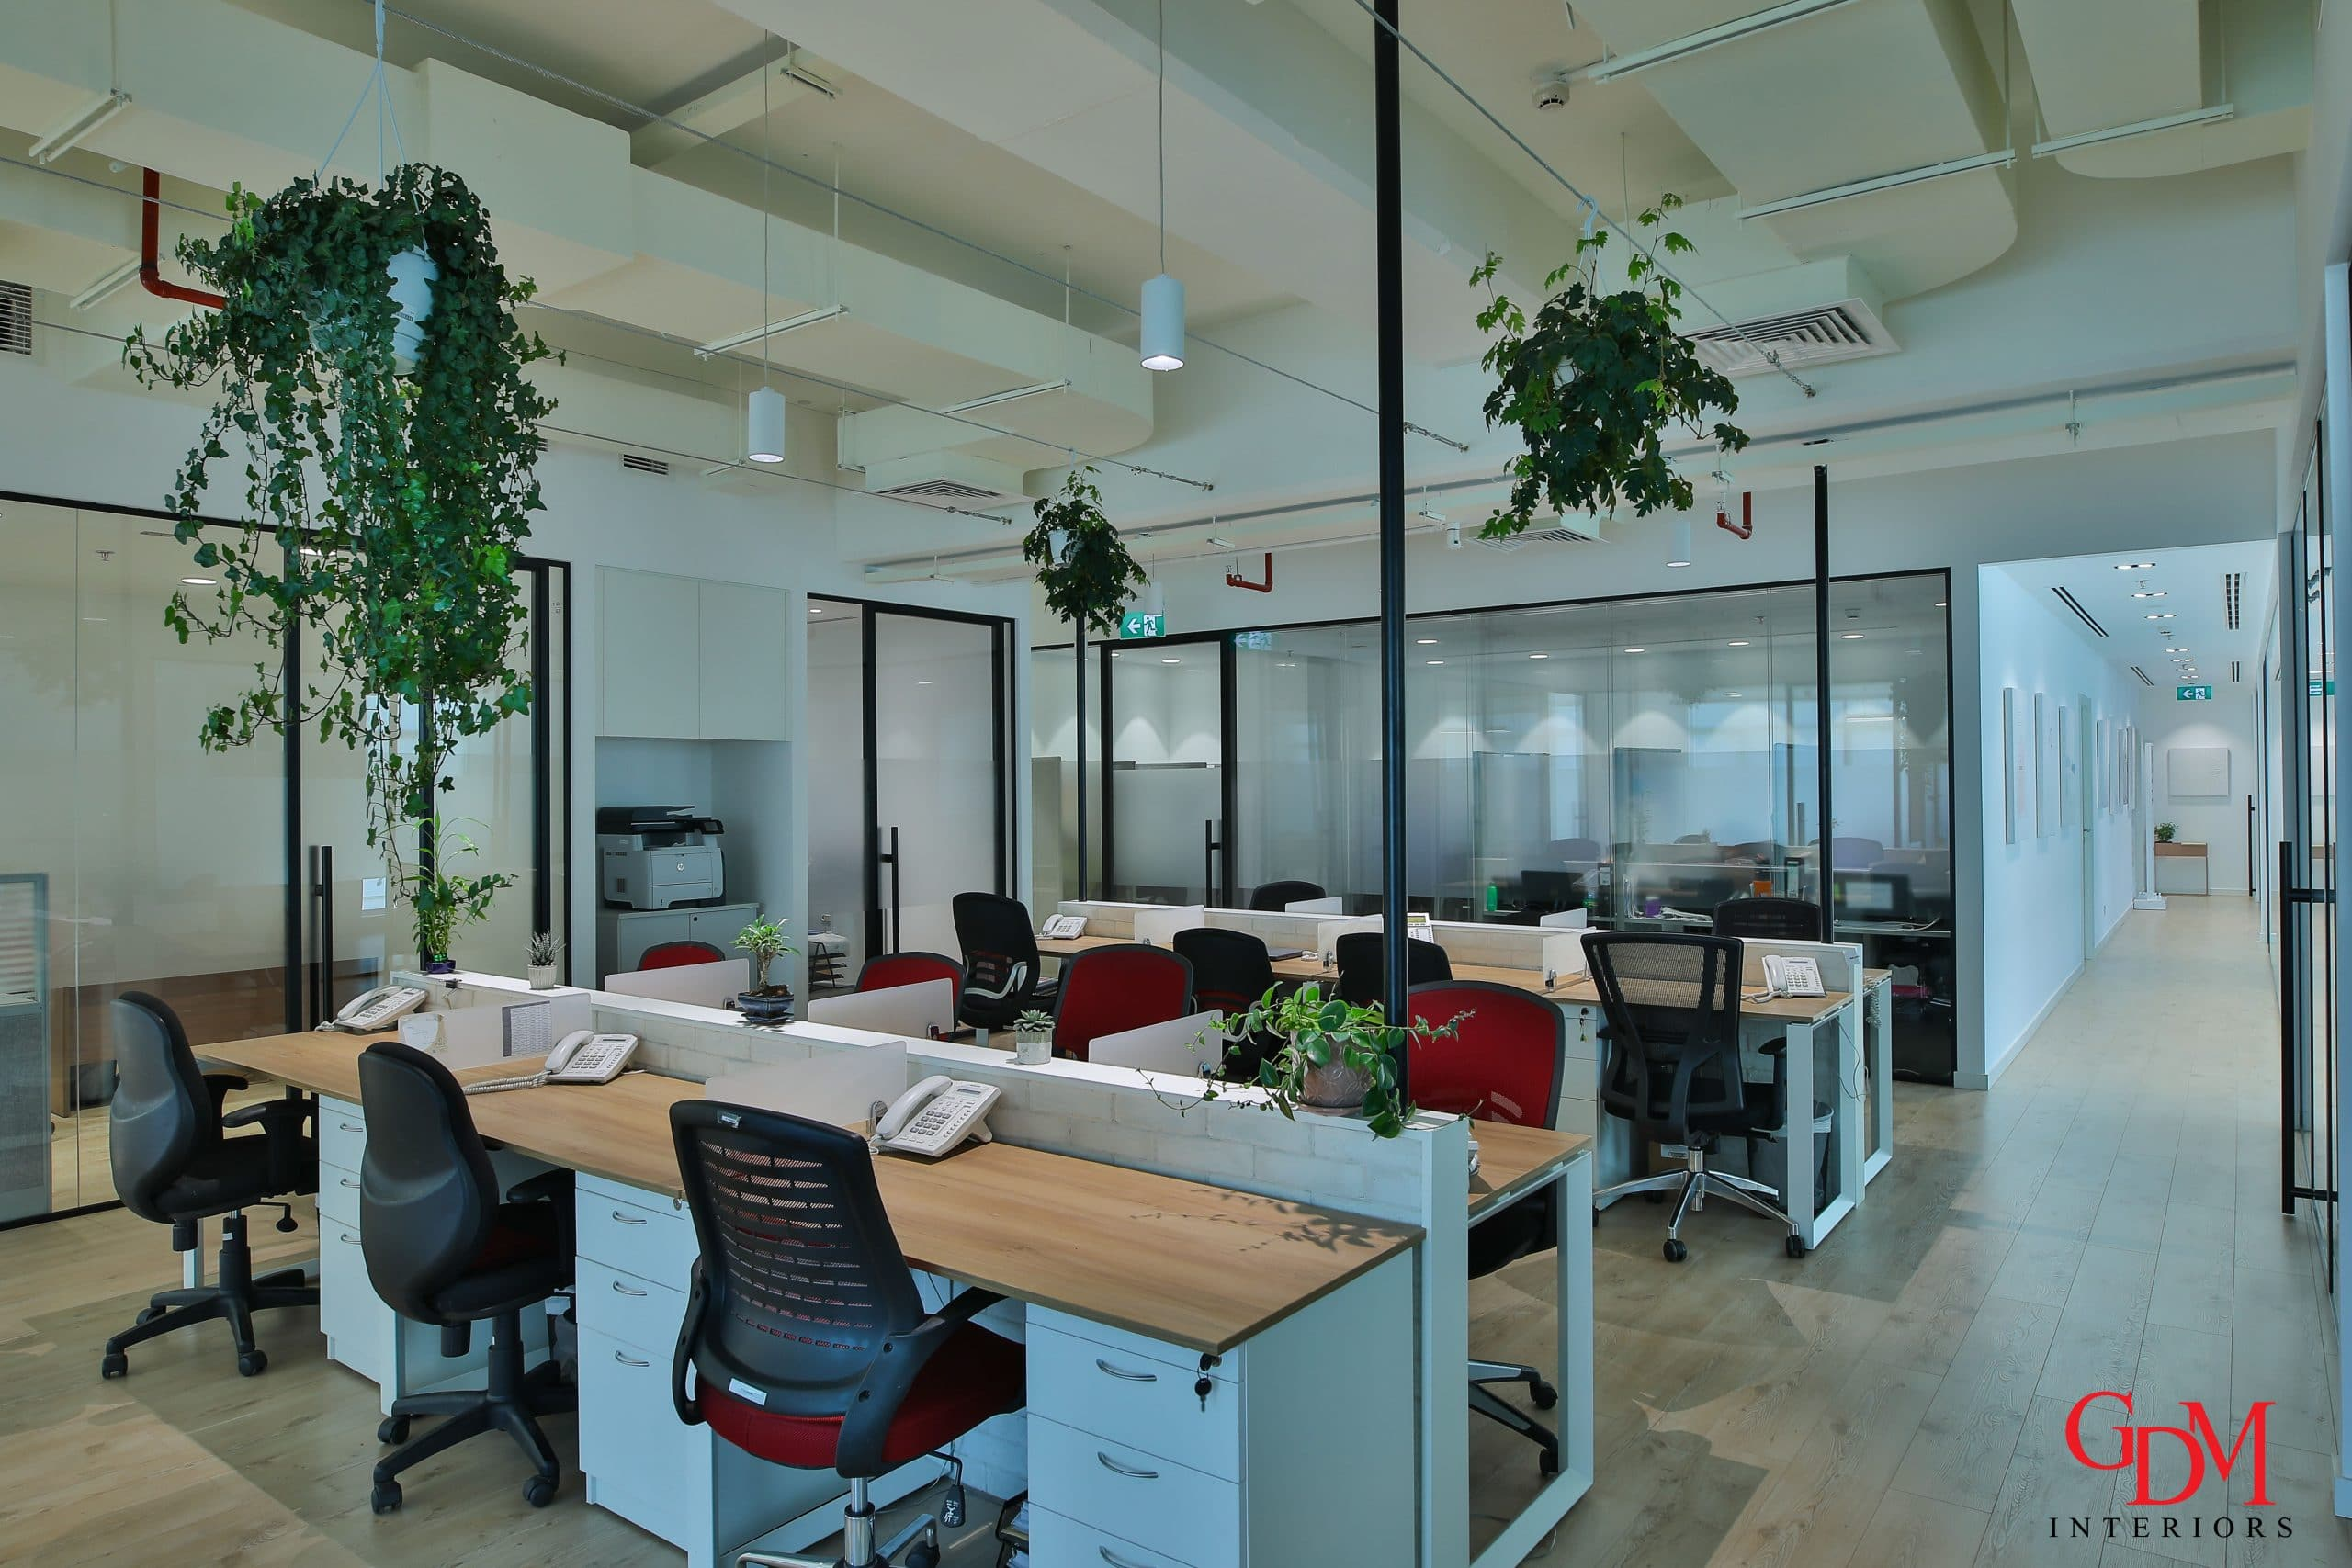 Best Commercial Fit Out Company in Dubai